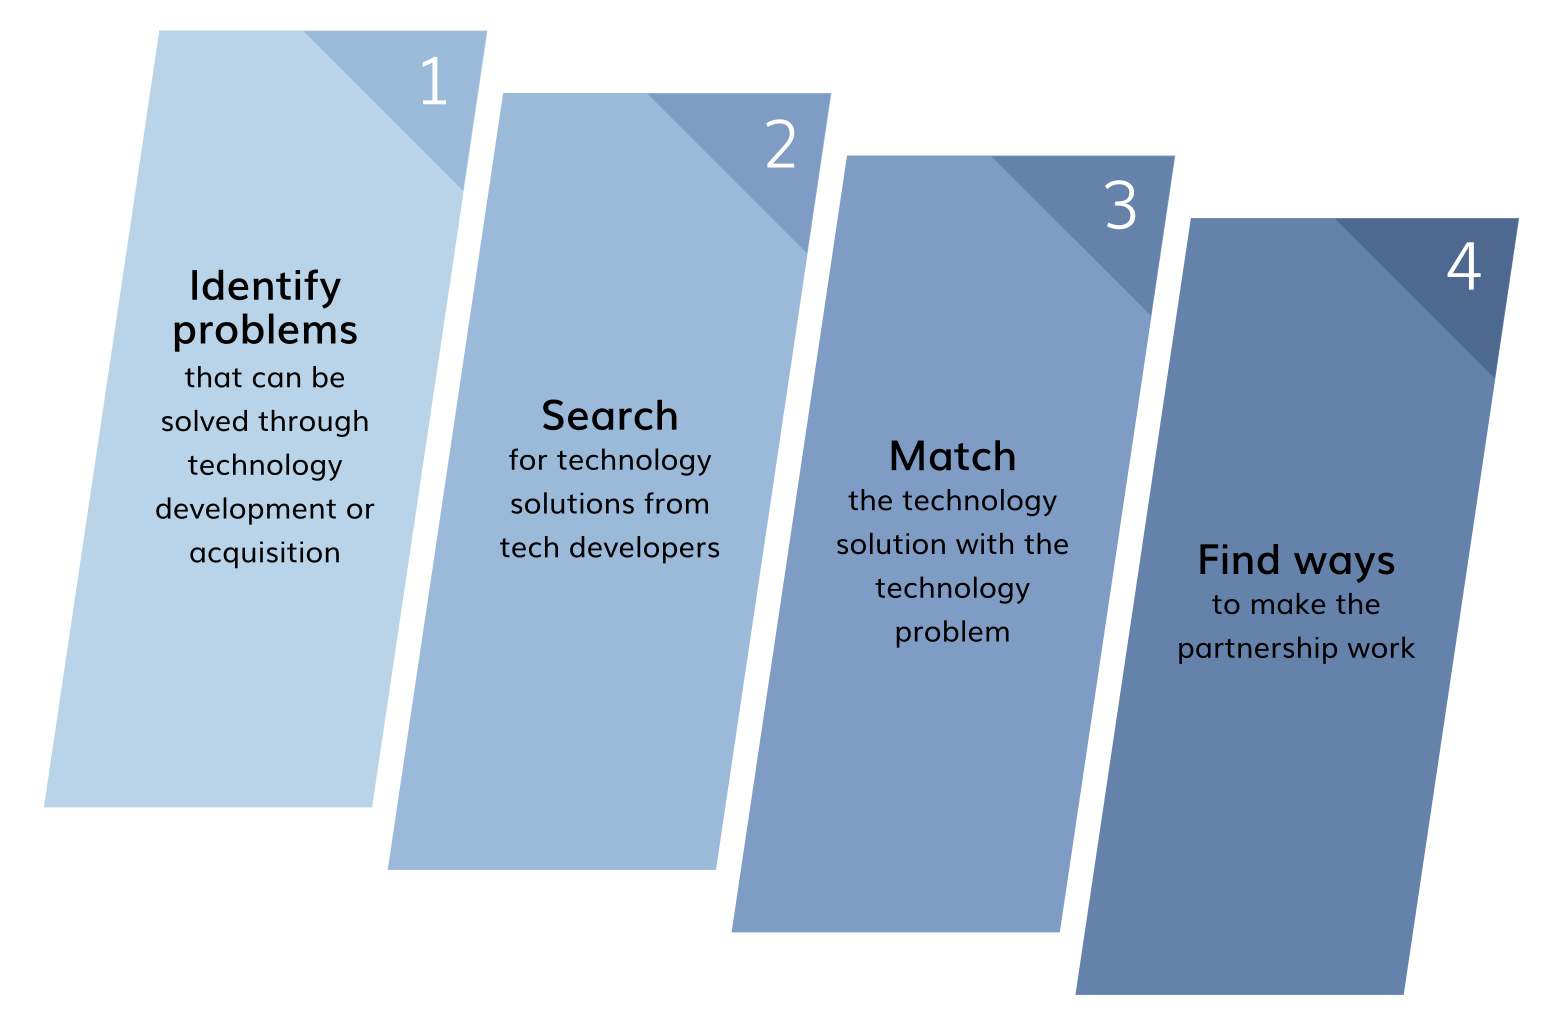 1. Identify problems that can be solved through technology development or acquisition. 2. Search for technology solutions from tech developers. 3. Match the technology solution with the technology problem. 4. Find ways to make the partnership work.